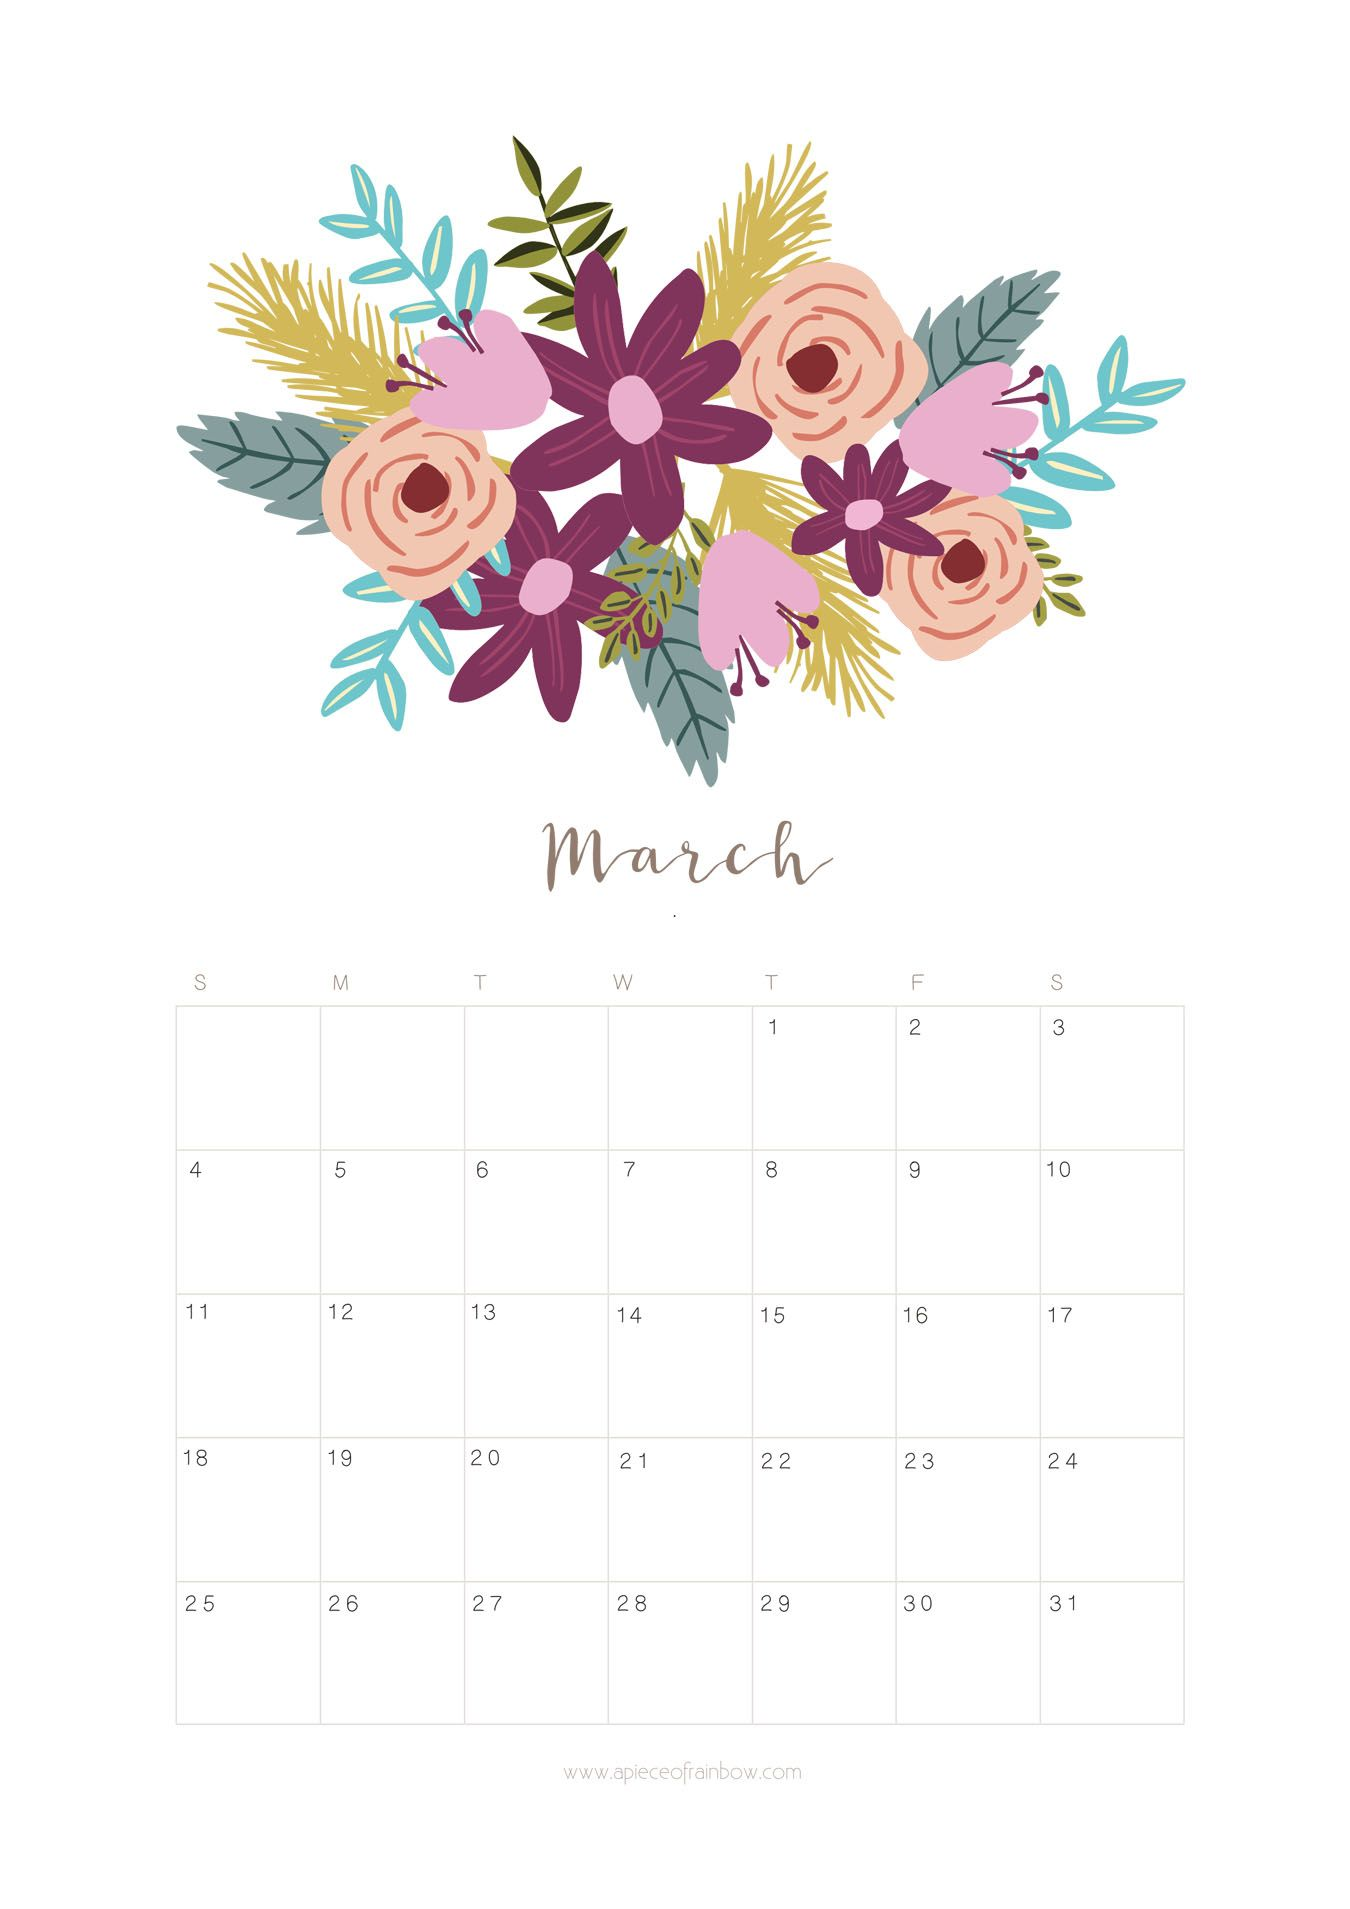 Calendar Flowers : Printable march calendar monthly planner flower